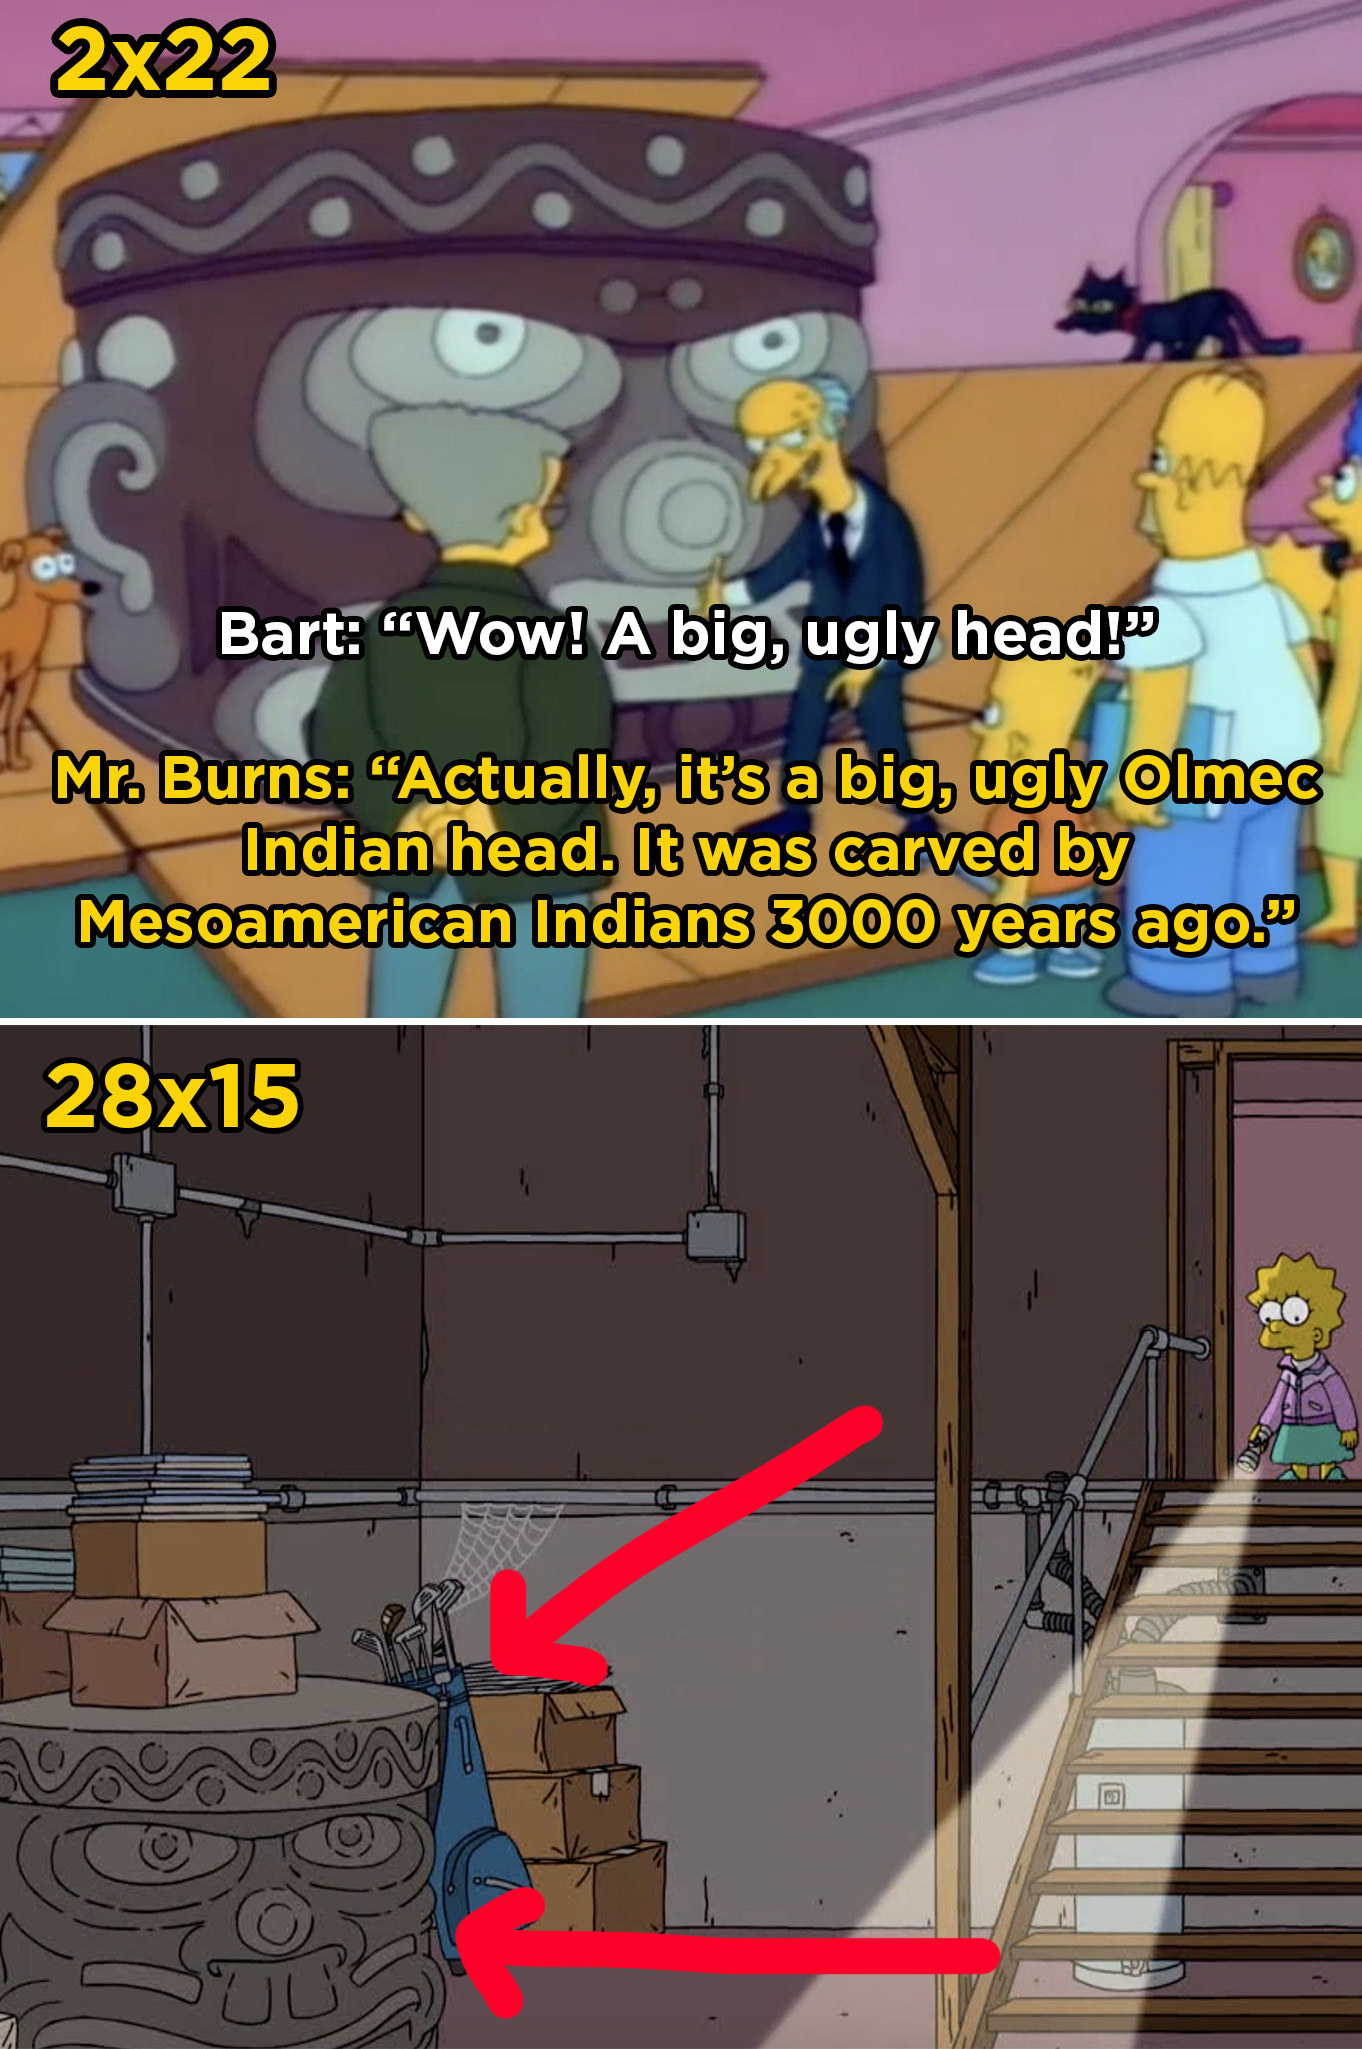 In Season 2 of  The Simpsons , Mr. Burns gives the Simpsons a giant statue of a head. Later, in Season 28, you can spot the statue in the basement.